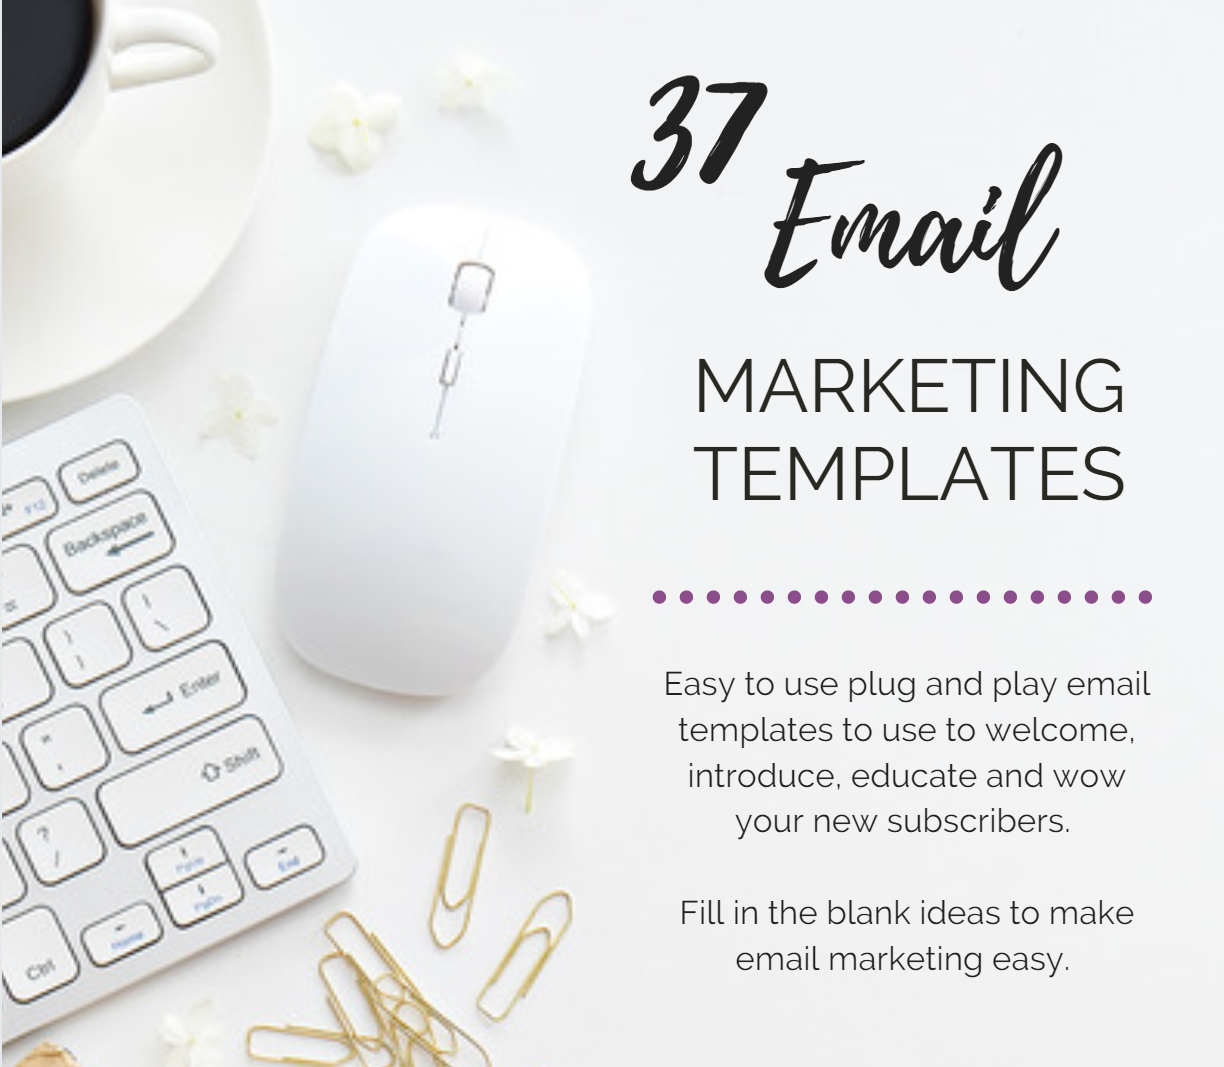 Email Marketing Templates | 37 Fill in the blank emails to help you engage your subscribers | email series to welcome, sell and announce